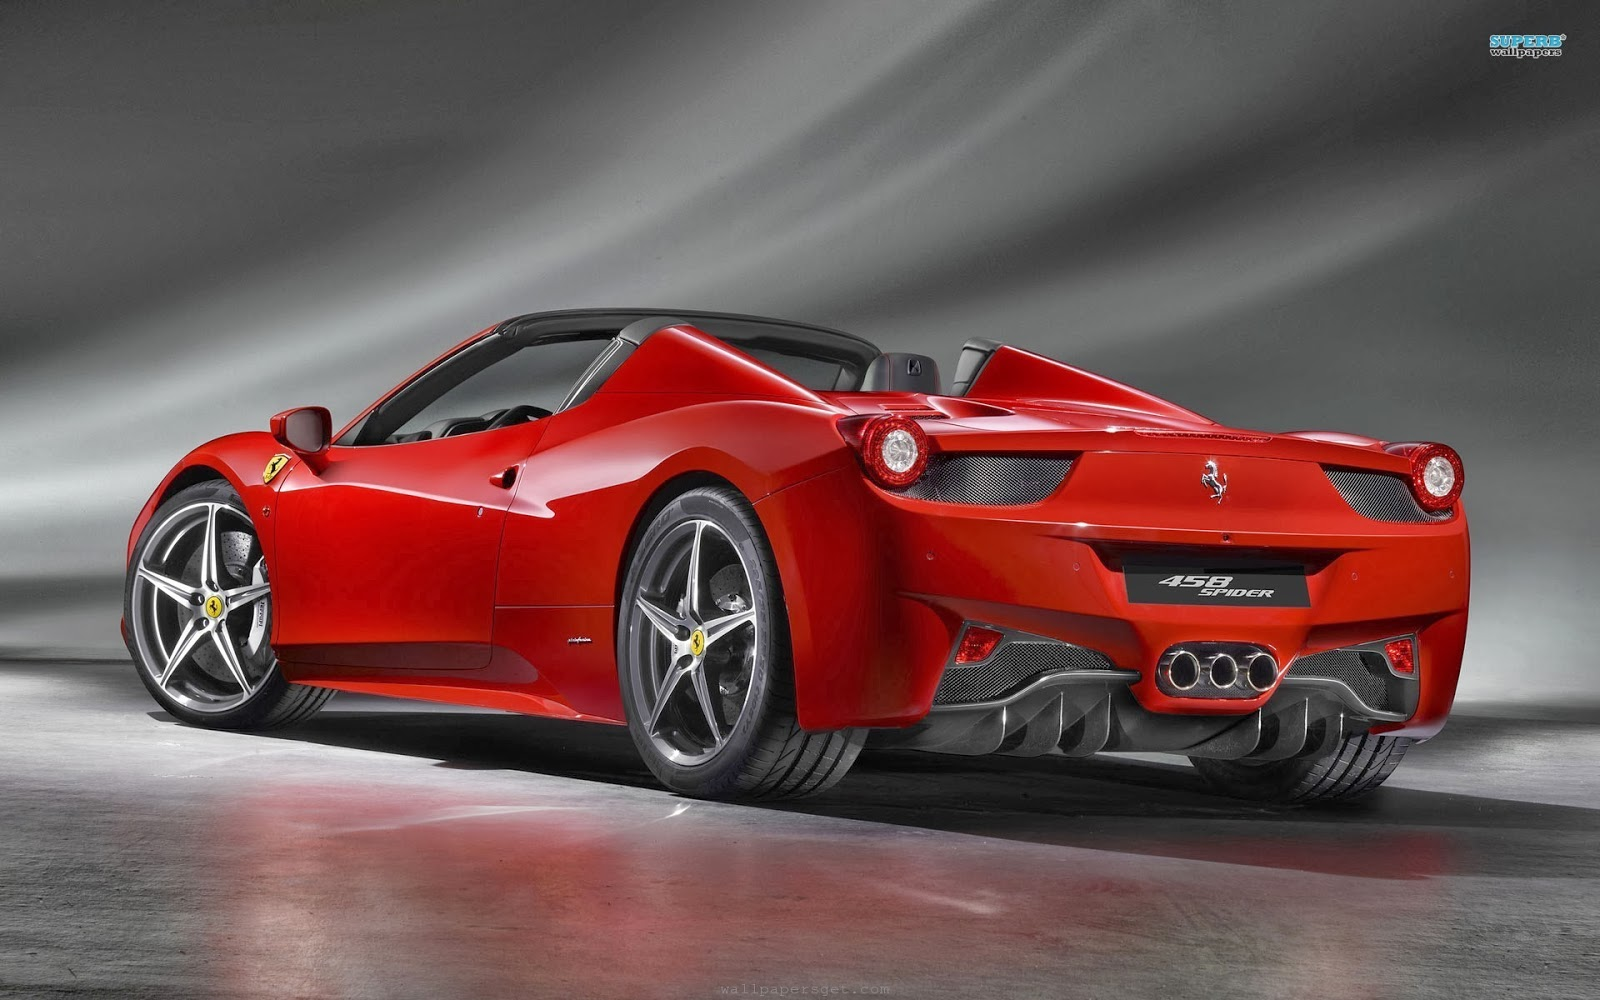 hd wallpapers ferrari 458 italia wallpapers. Black Bedroom Furniture Sets. Home Design Ideas